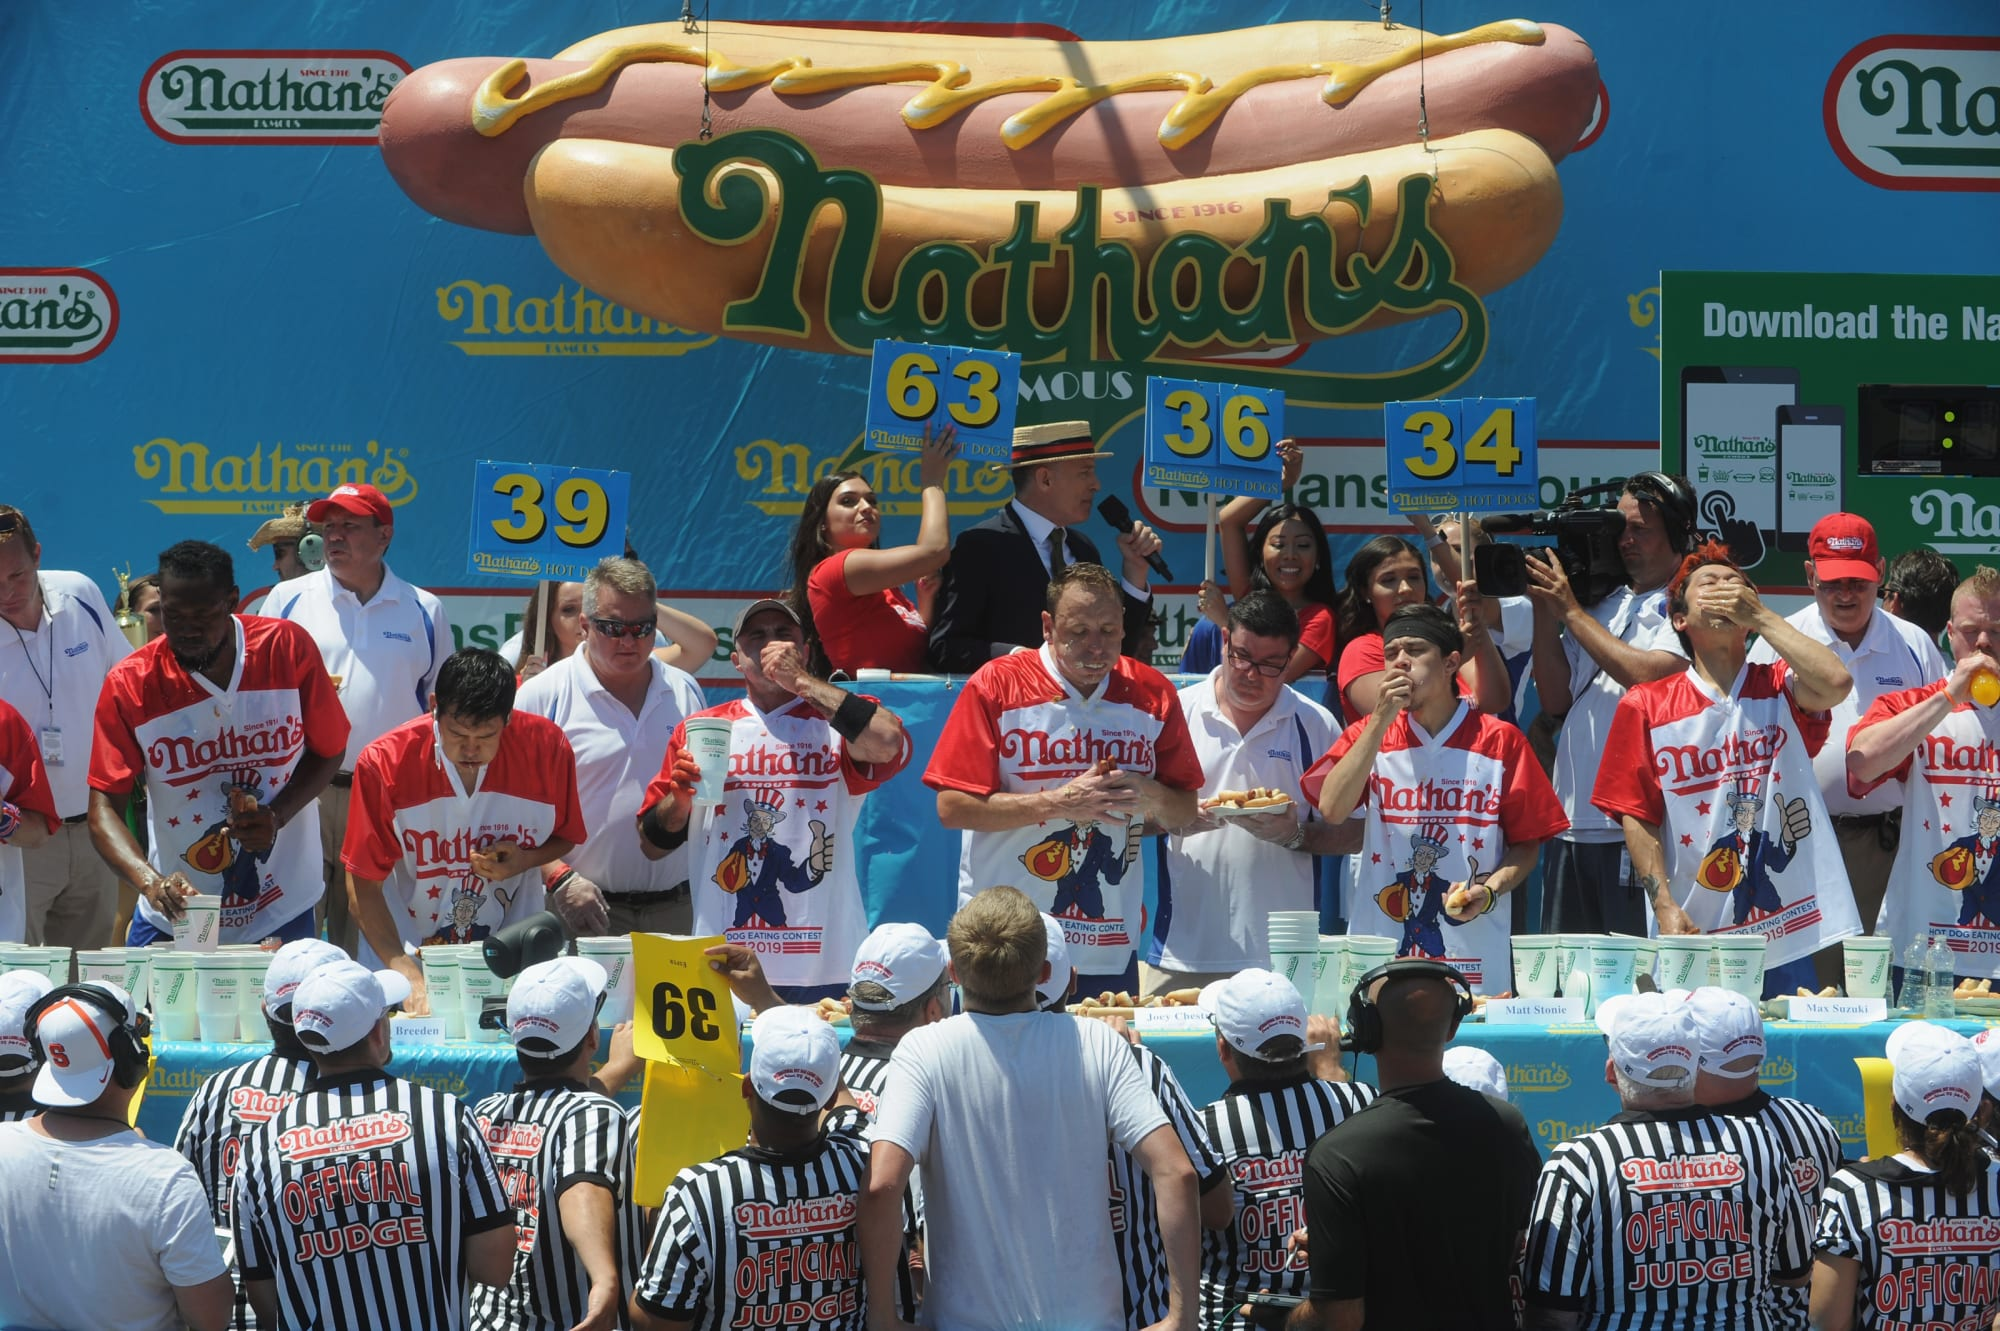 Nathan's Hot Dog eating contest 2021 live stream reddit: How to watch